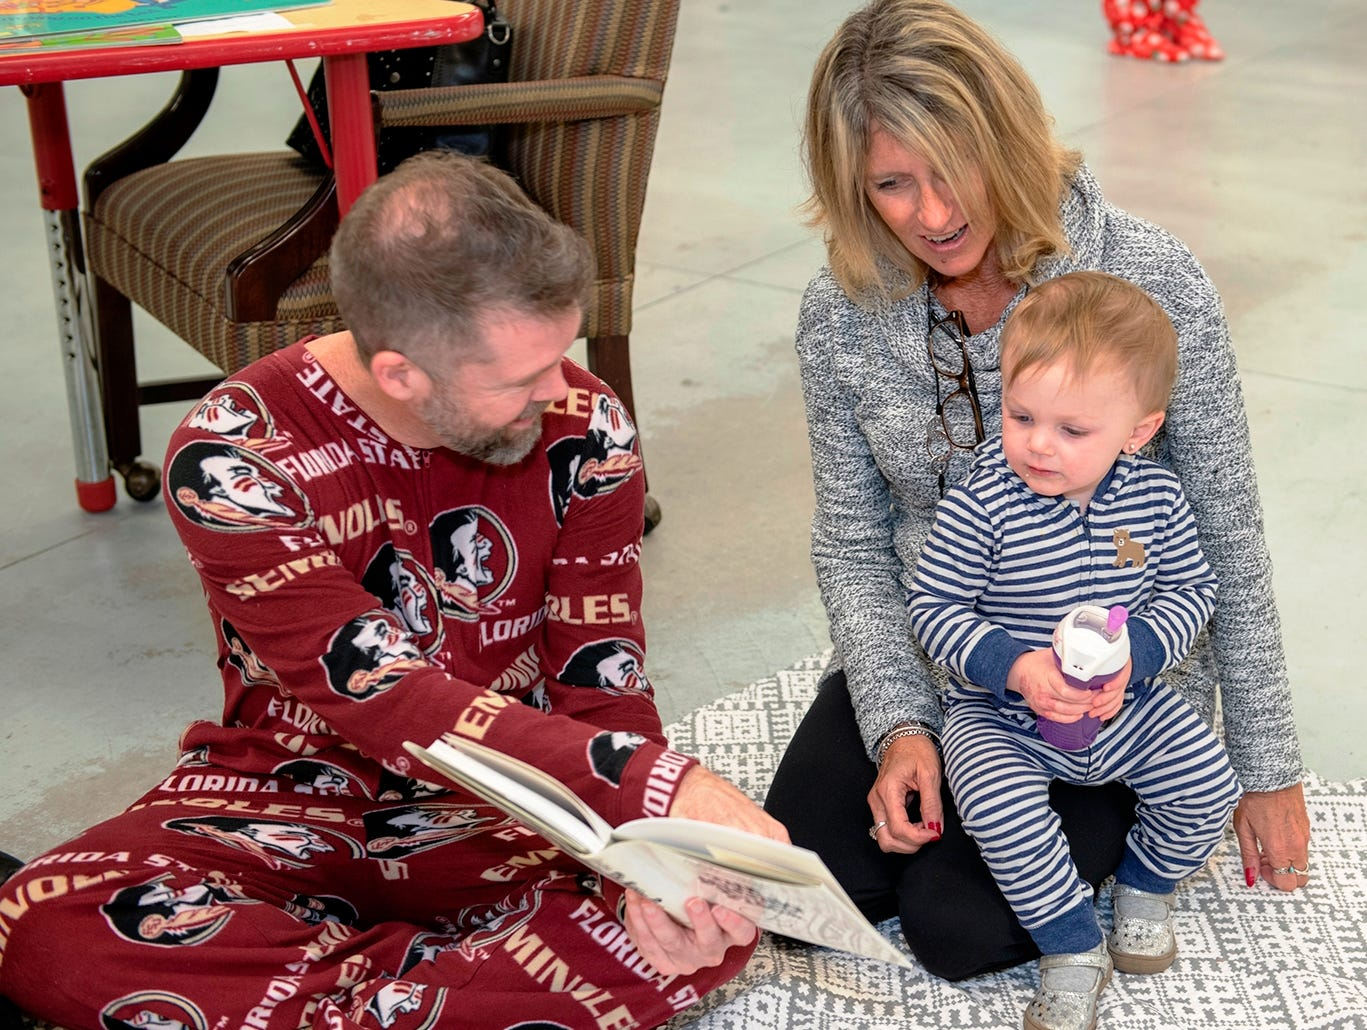 Guest readers Jeff Shearer, left, and Gigi Suntum share a story with a child at the Pajama Jam to benefit The Language & Literacy Connection. Shearer is CEO of Tykes & Teens. Suntum is executive director of Caring Children Clothing Children.